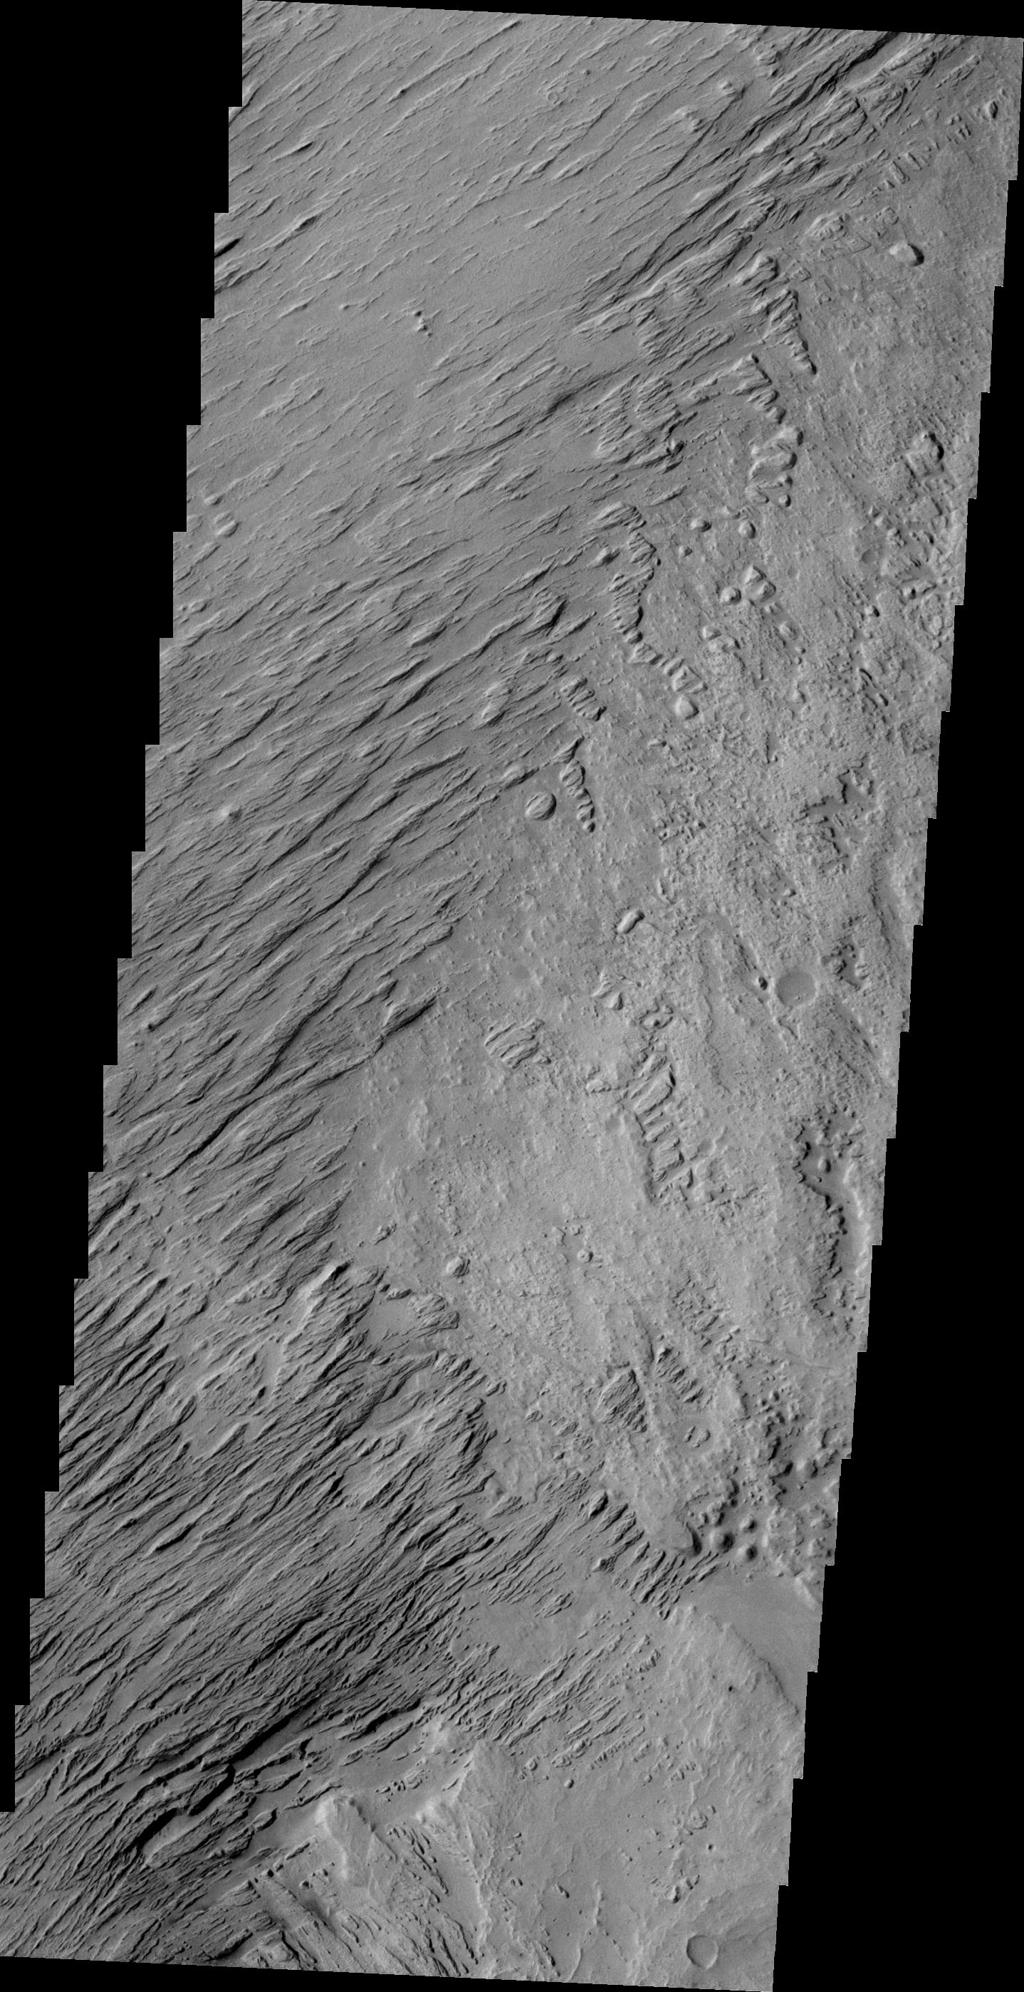 This image of Zephyria Planum, taken by NASA's 2001 Mars Odyssey spacecraft, shows wind eroded yardangs.